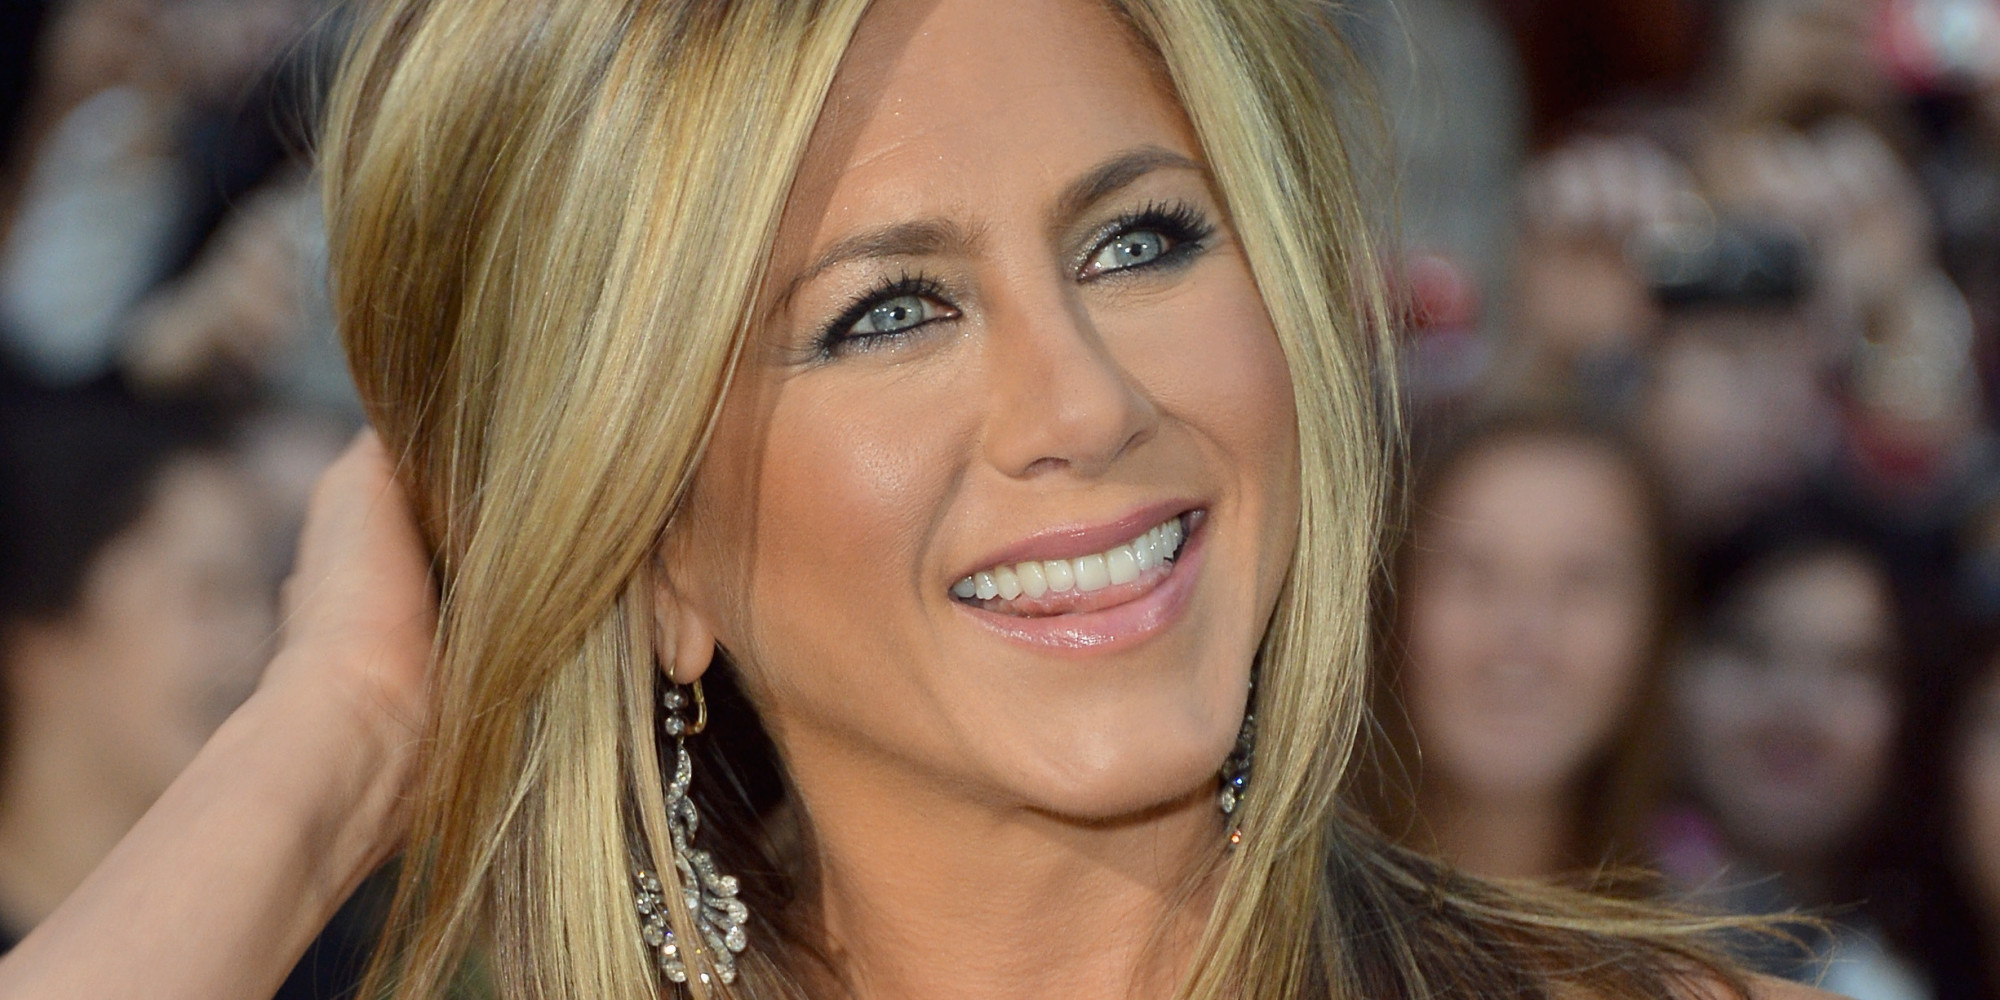 Jennifer Aniston Chops Her Hair Into Short Bob After